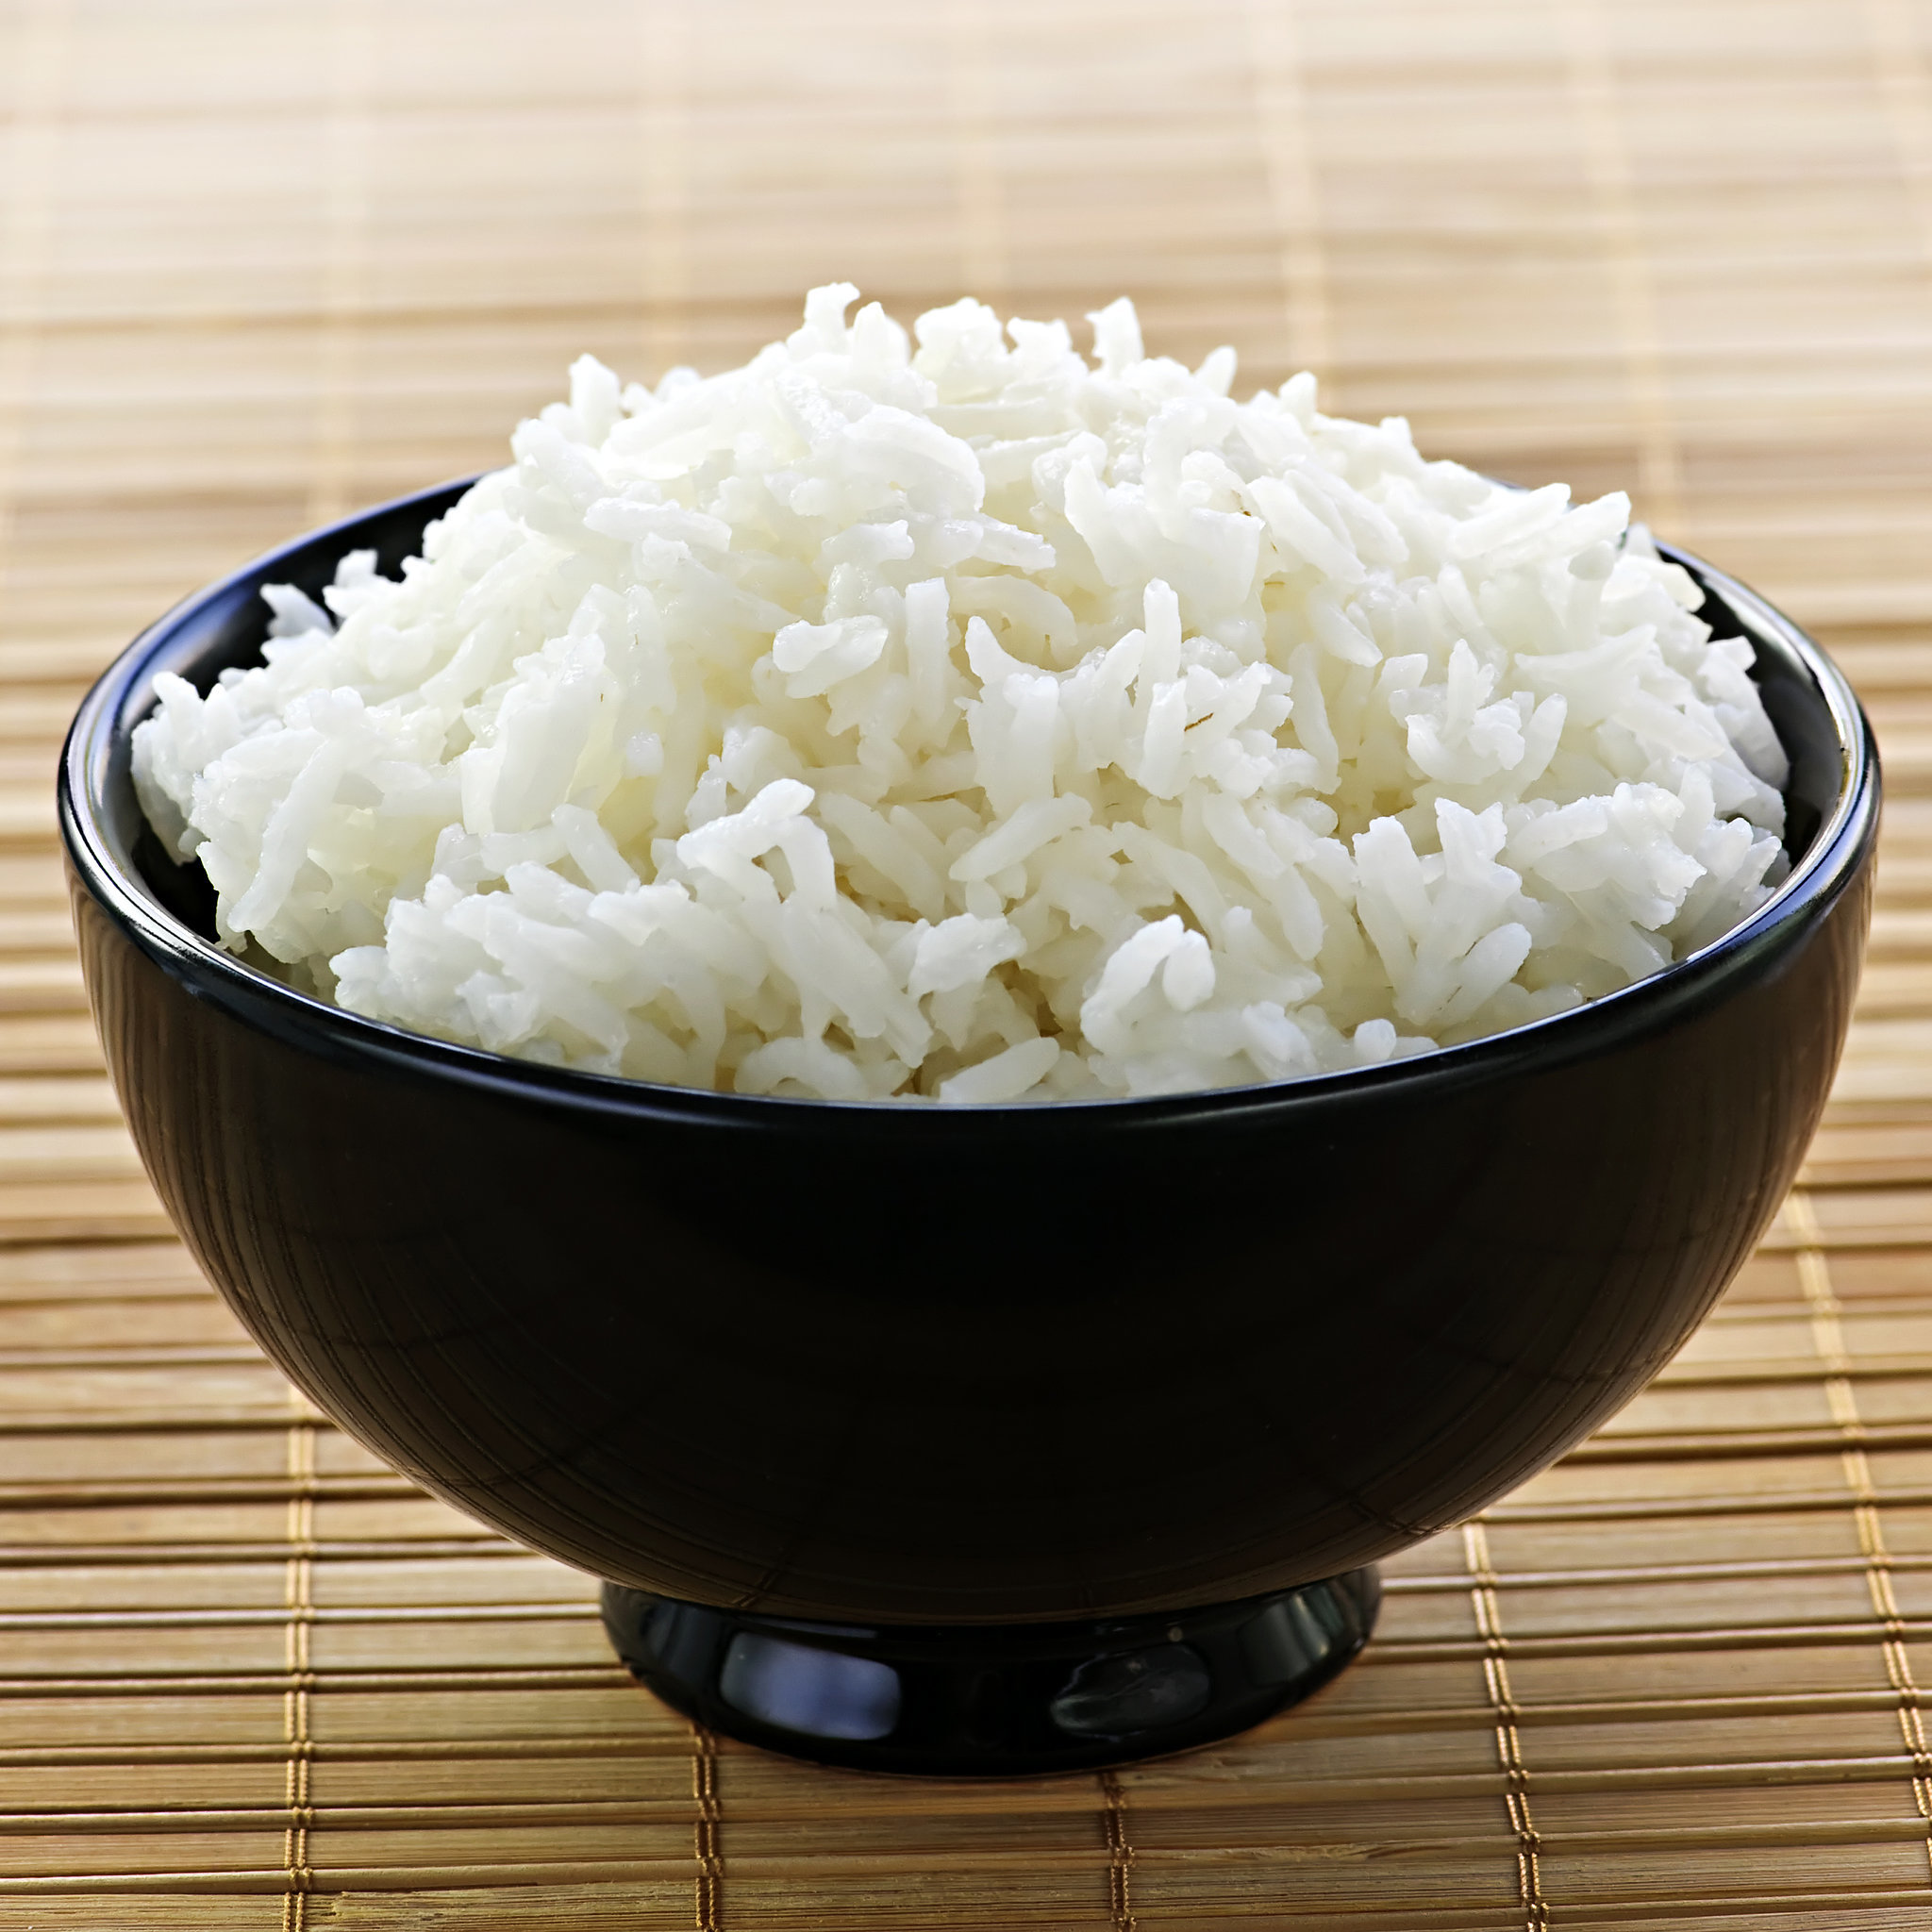 White Rice in a Blue Bowl 2676.35 Kb